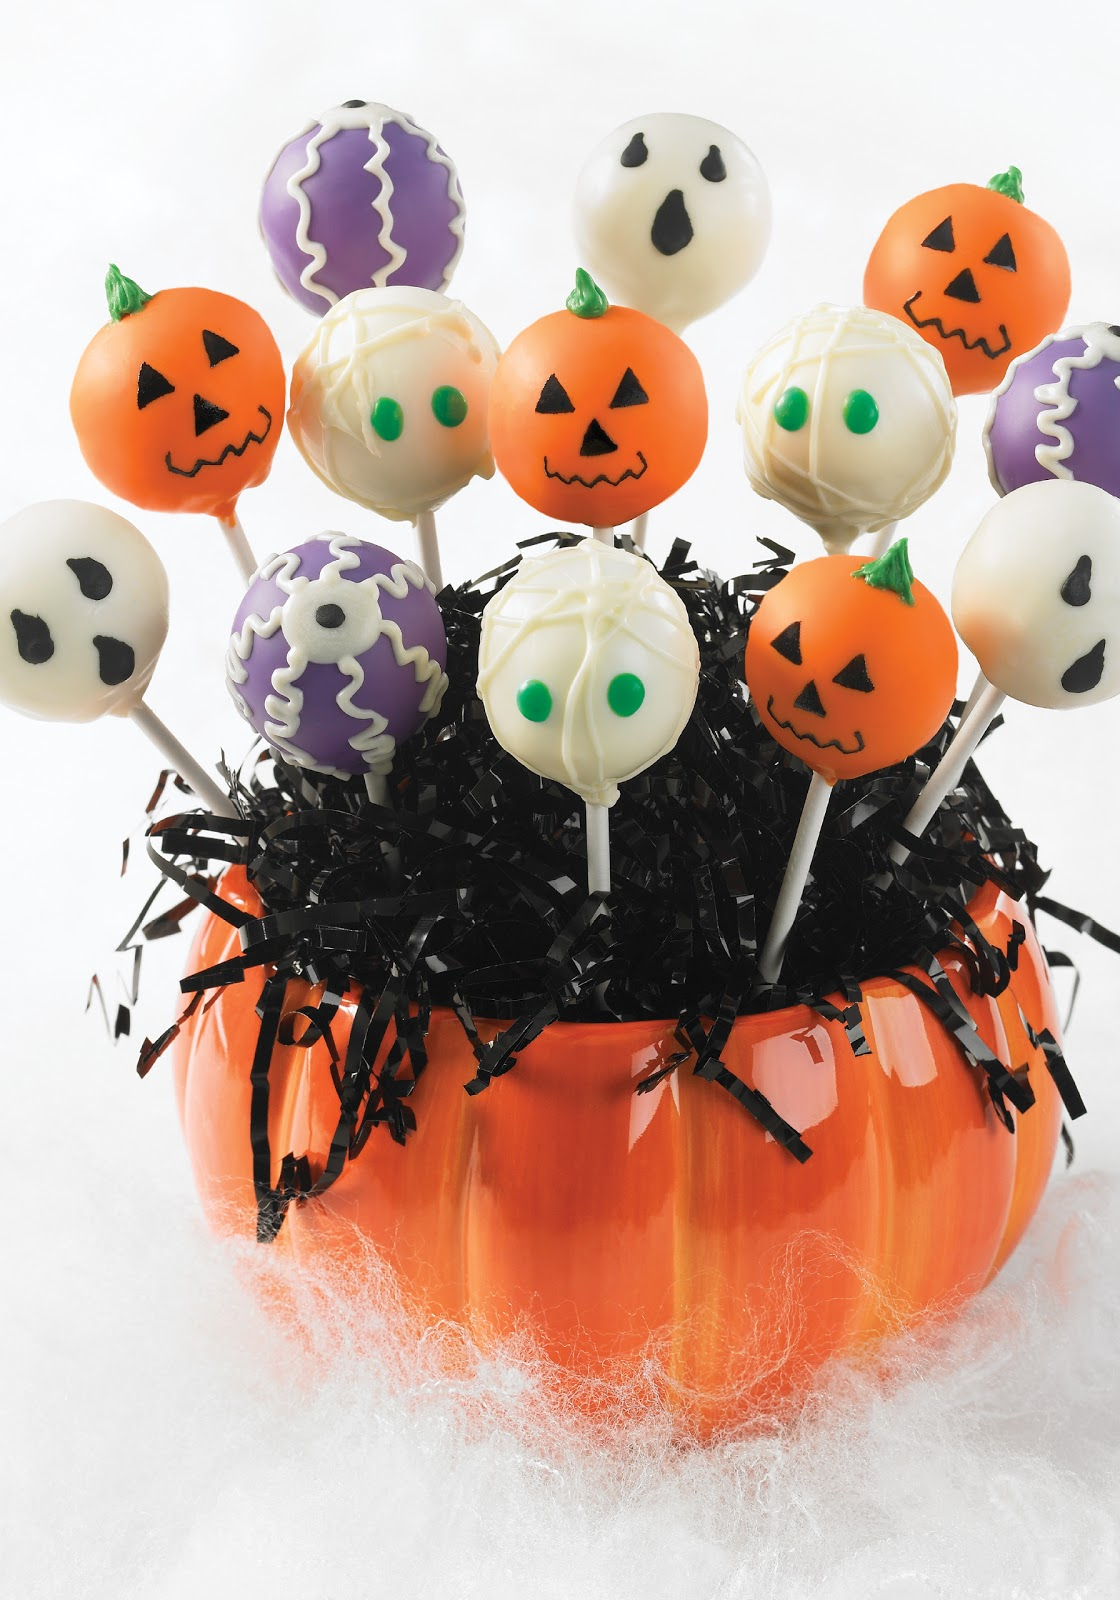 Crafty Zoo with Monkeys: Halloween Cake Pops